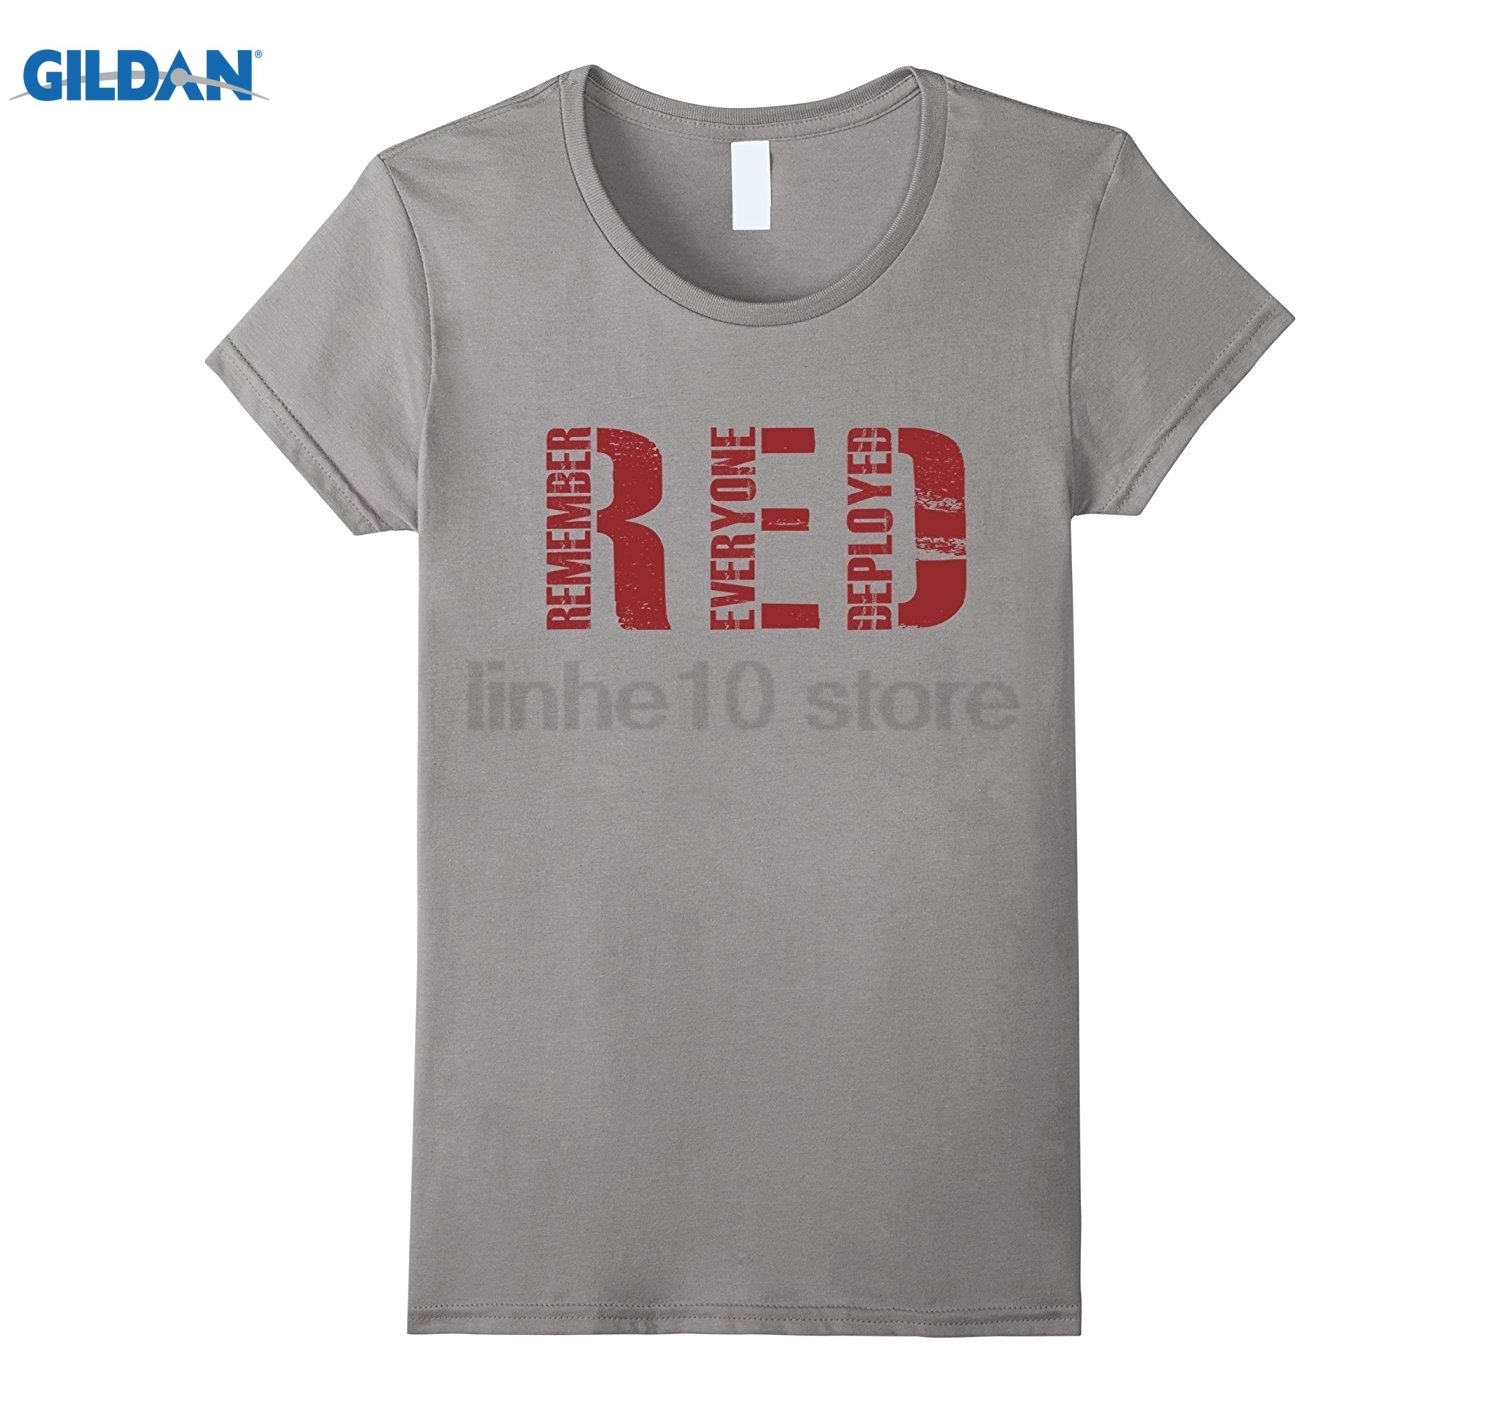 GILDAN R.E.D. FRIDAY T-Shirt ( Both On The Front vs Back) Womens T-shirt